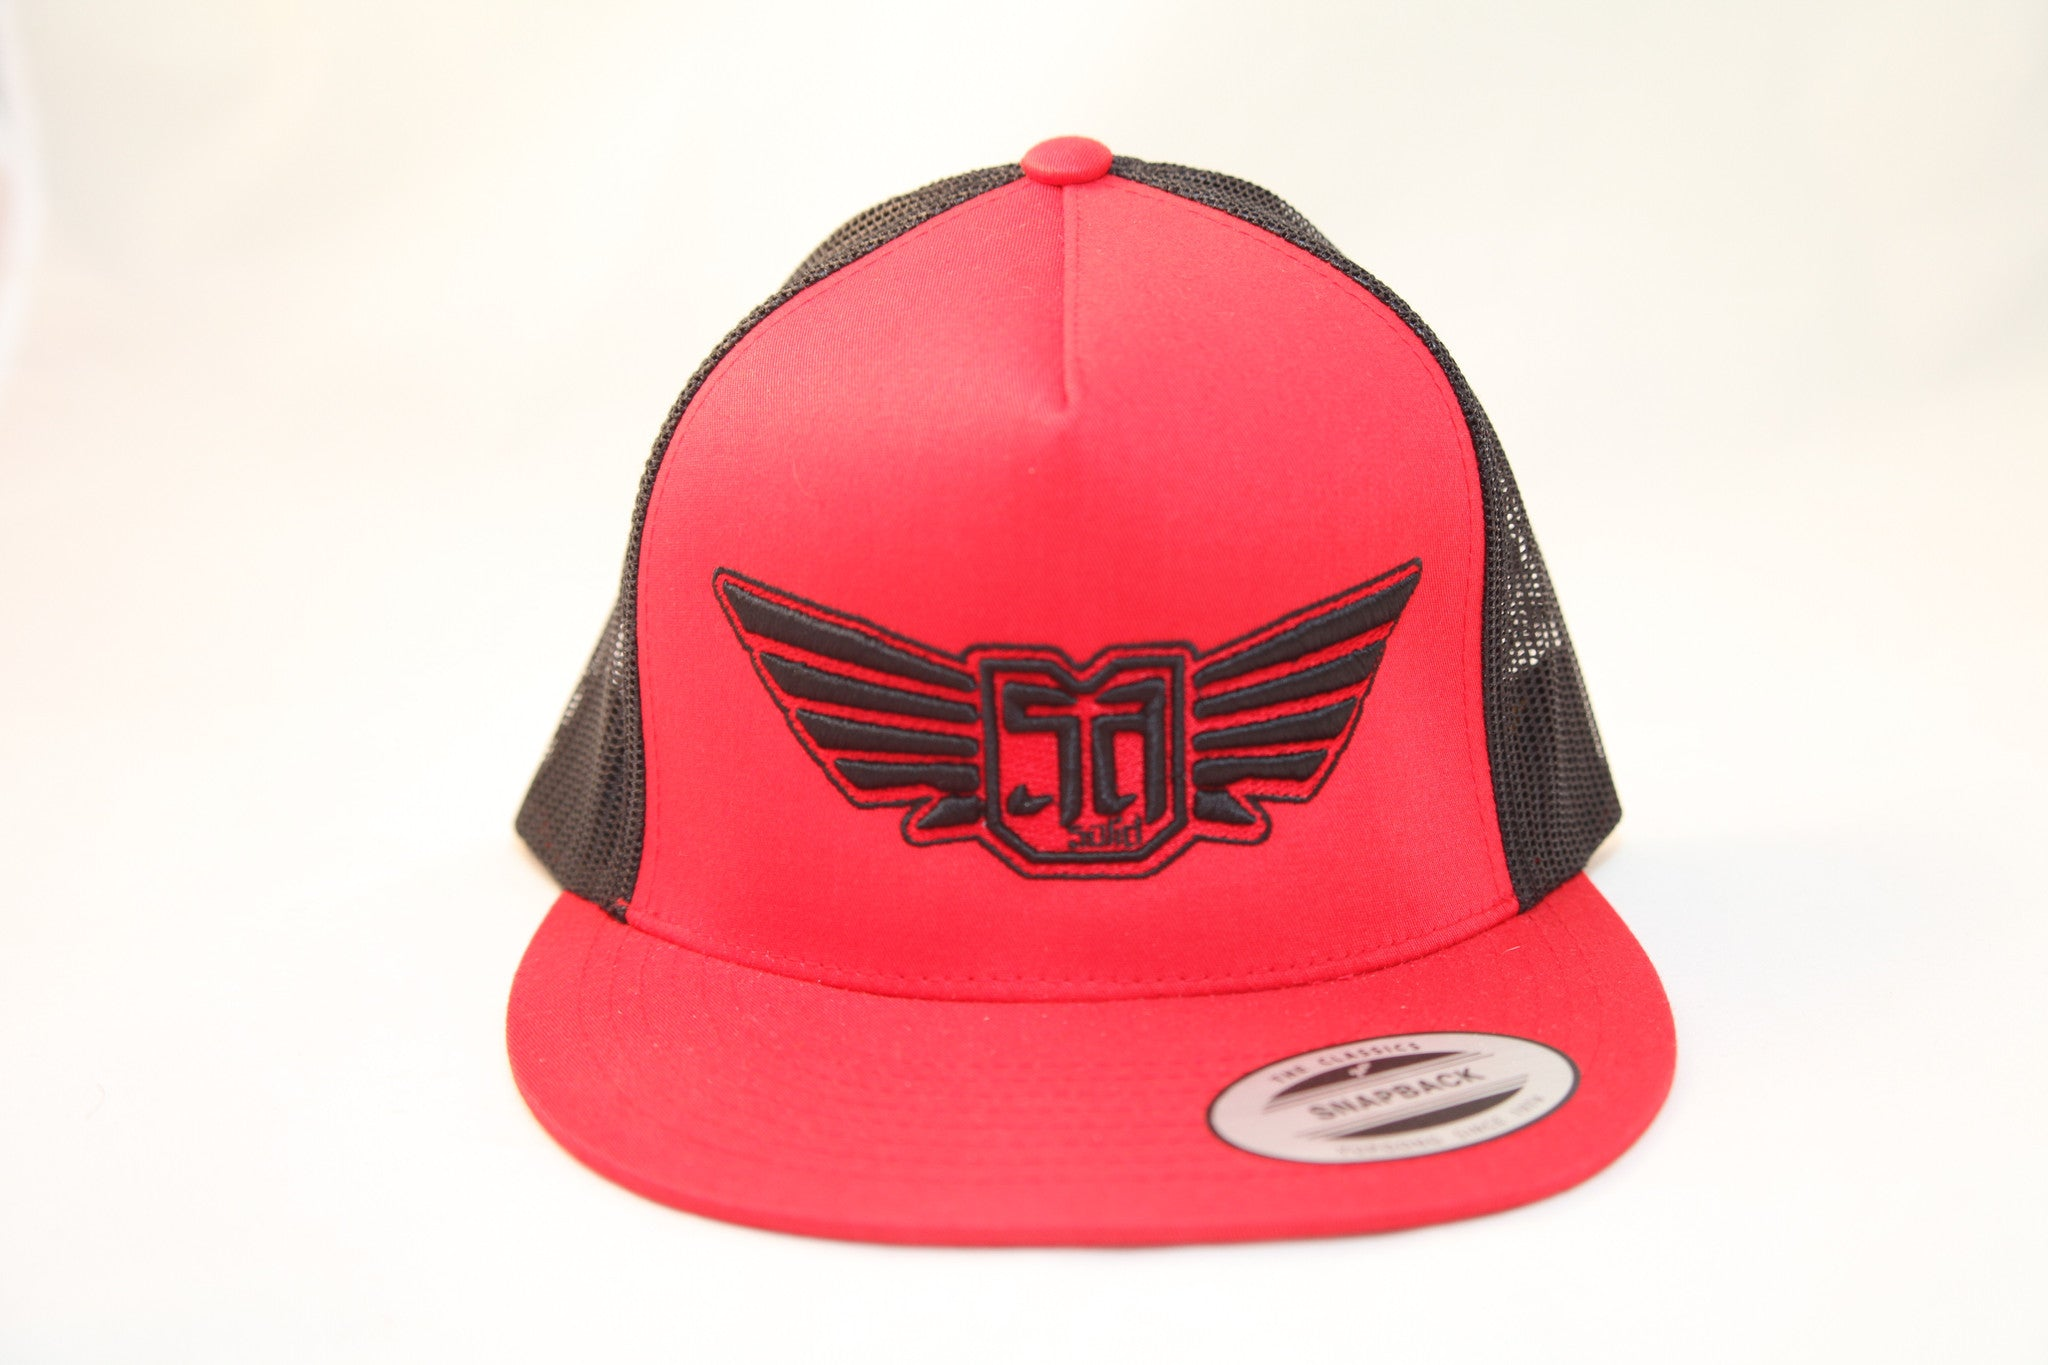 AV8 - MESH BACK - RED / BLACK - BLK / RED LOGO